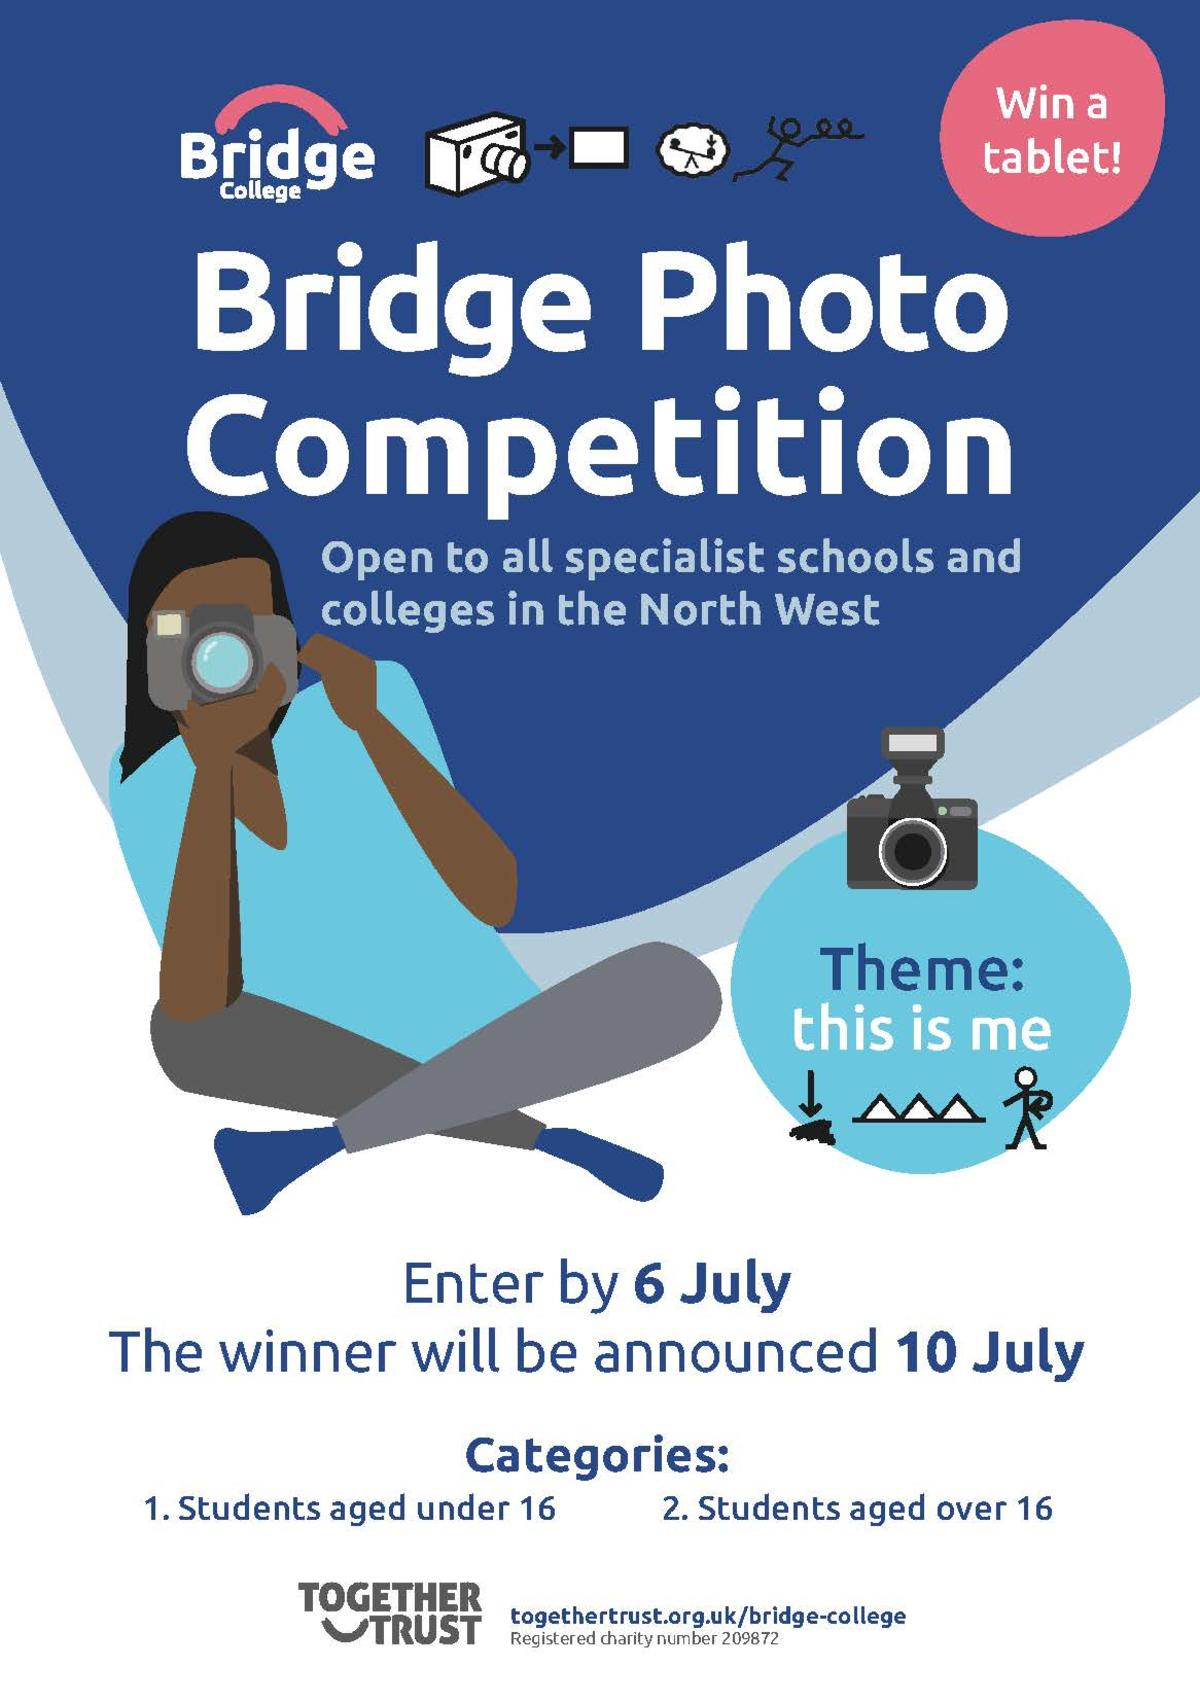 Bridge College specialist schools photo competition